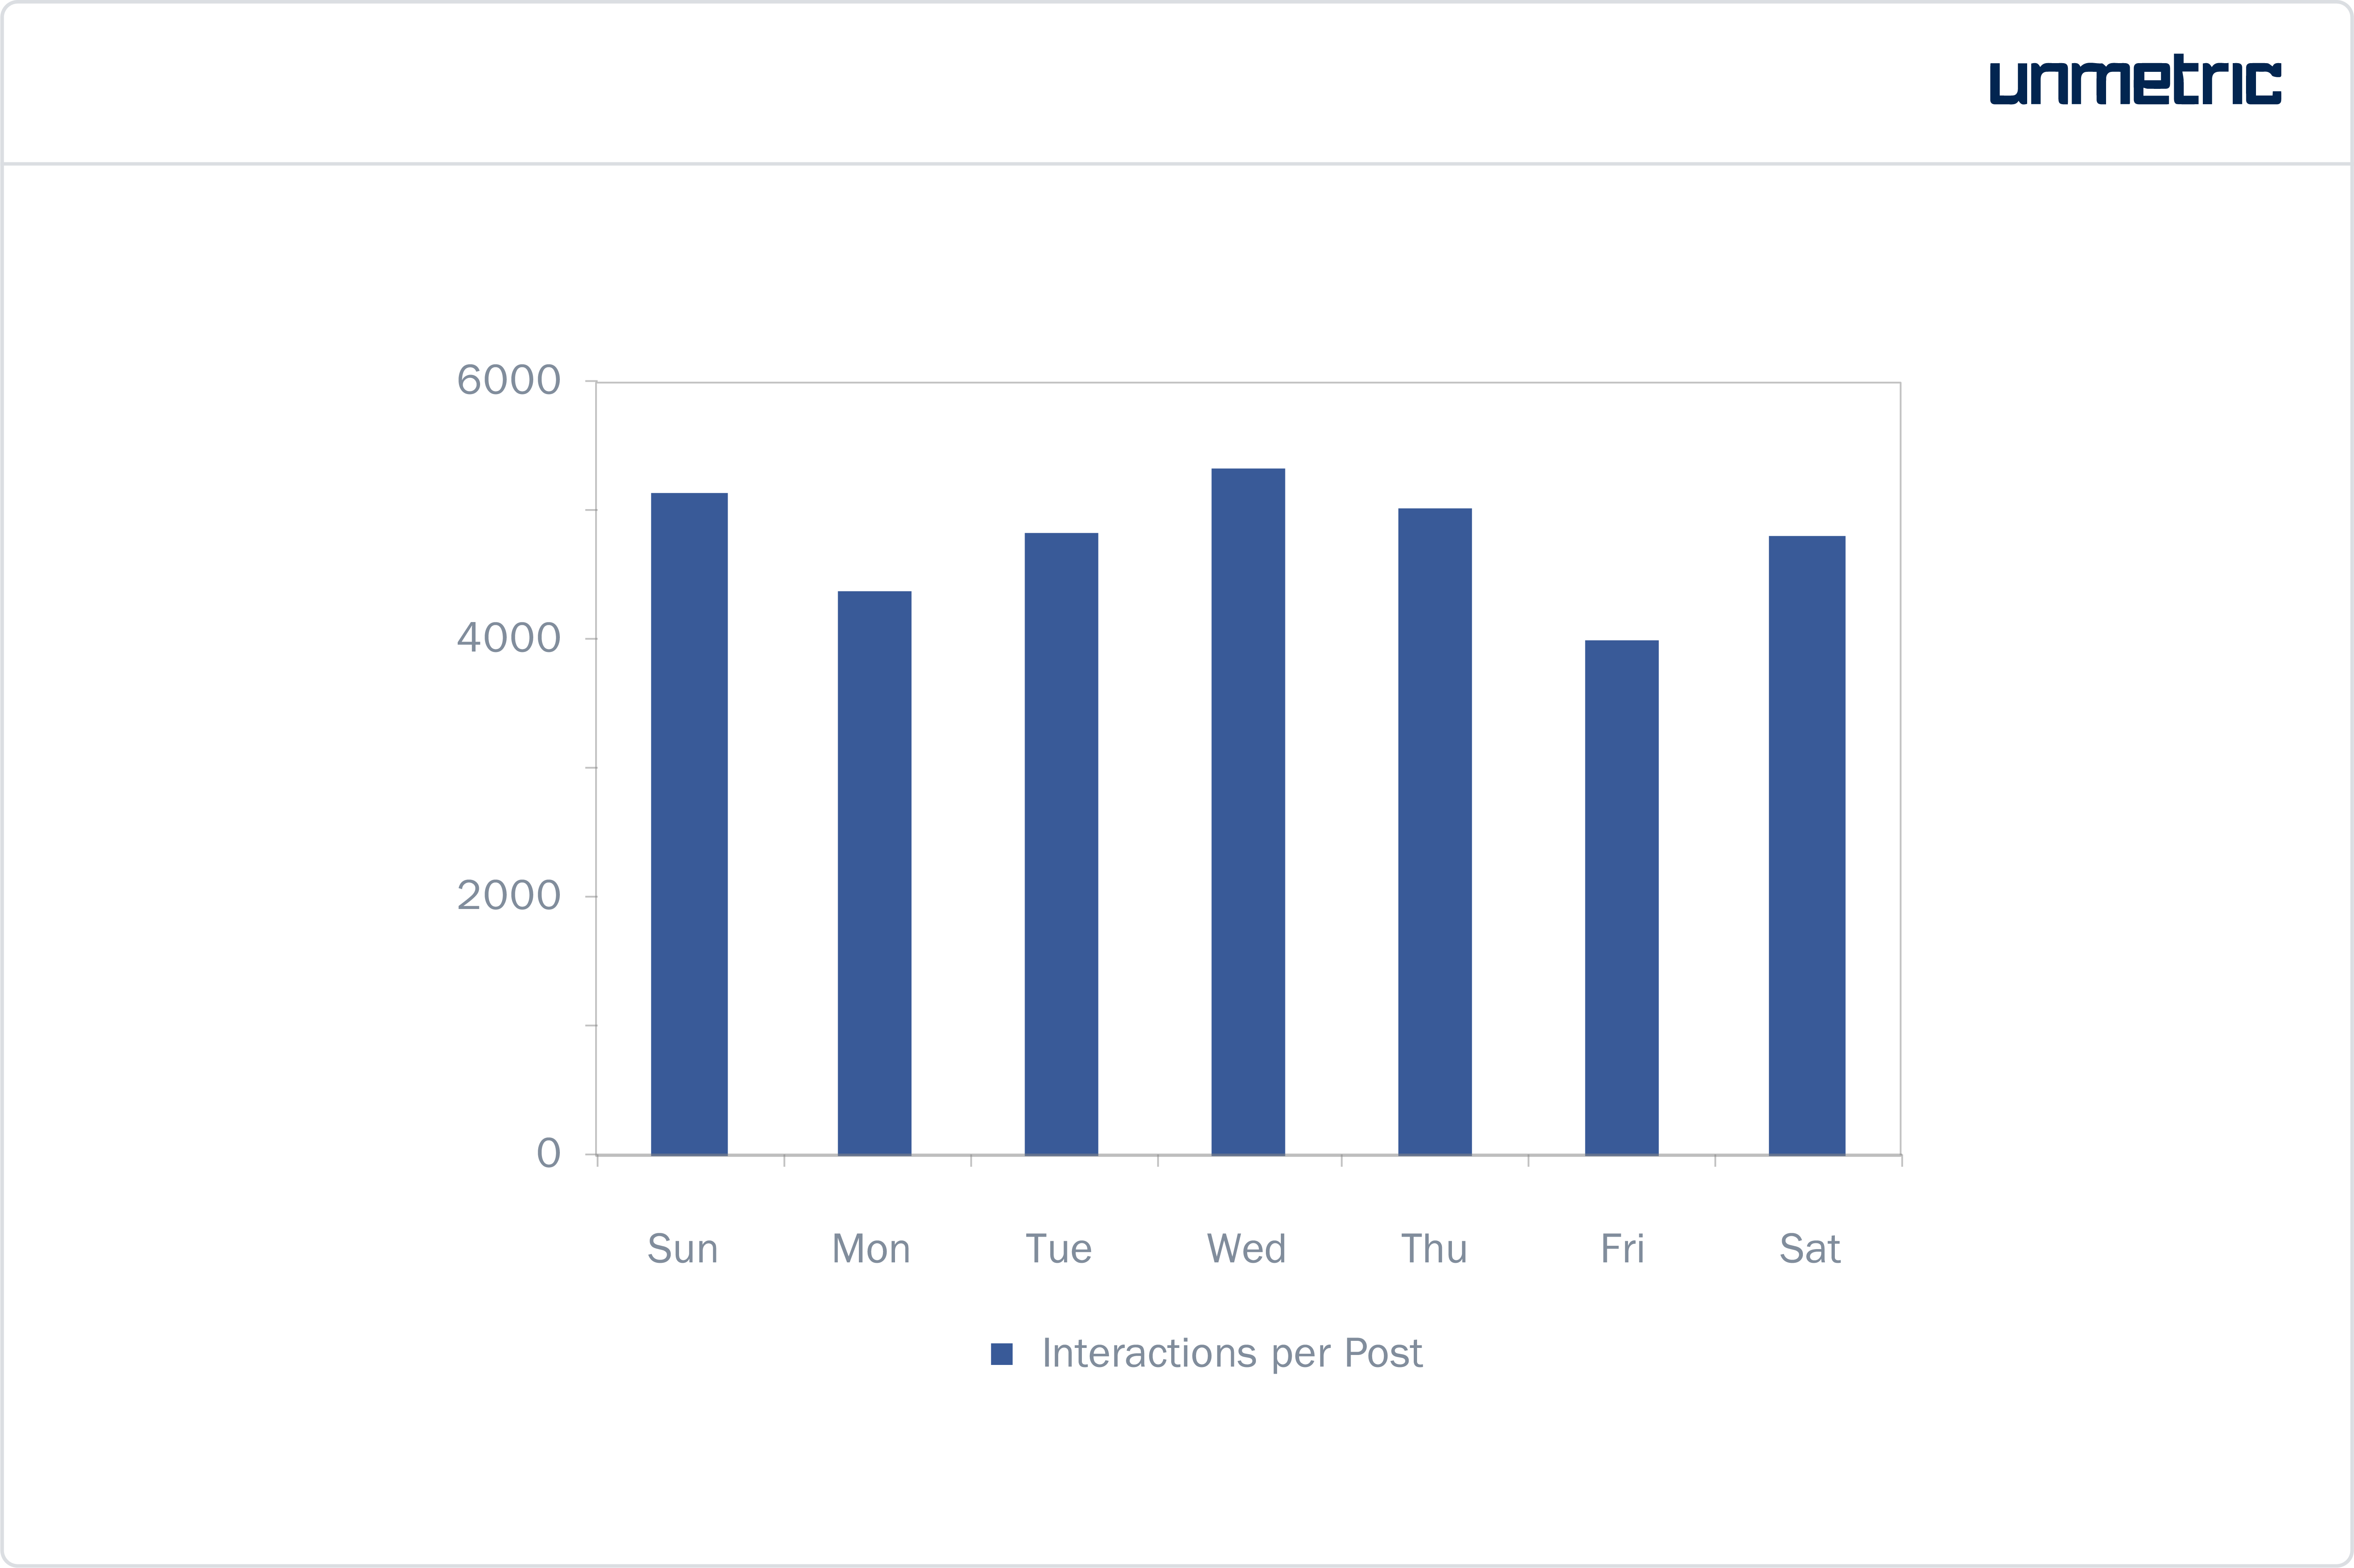 Number of Audience Interactions Recorded on Each Day of the Week